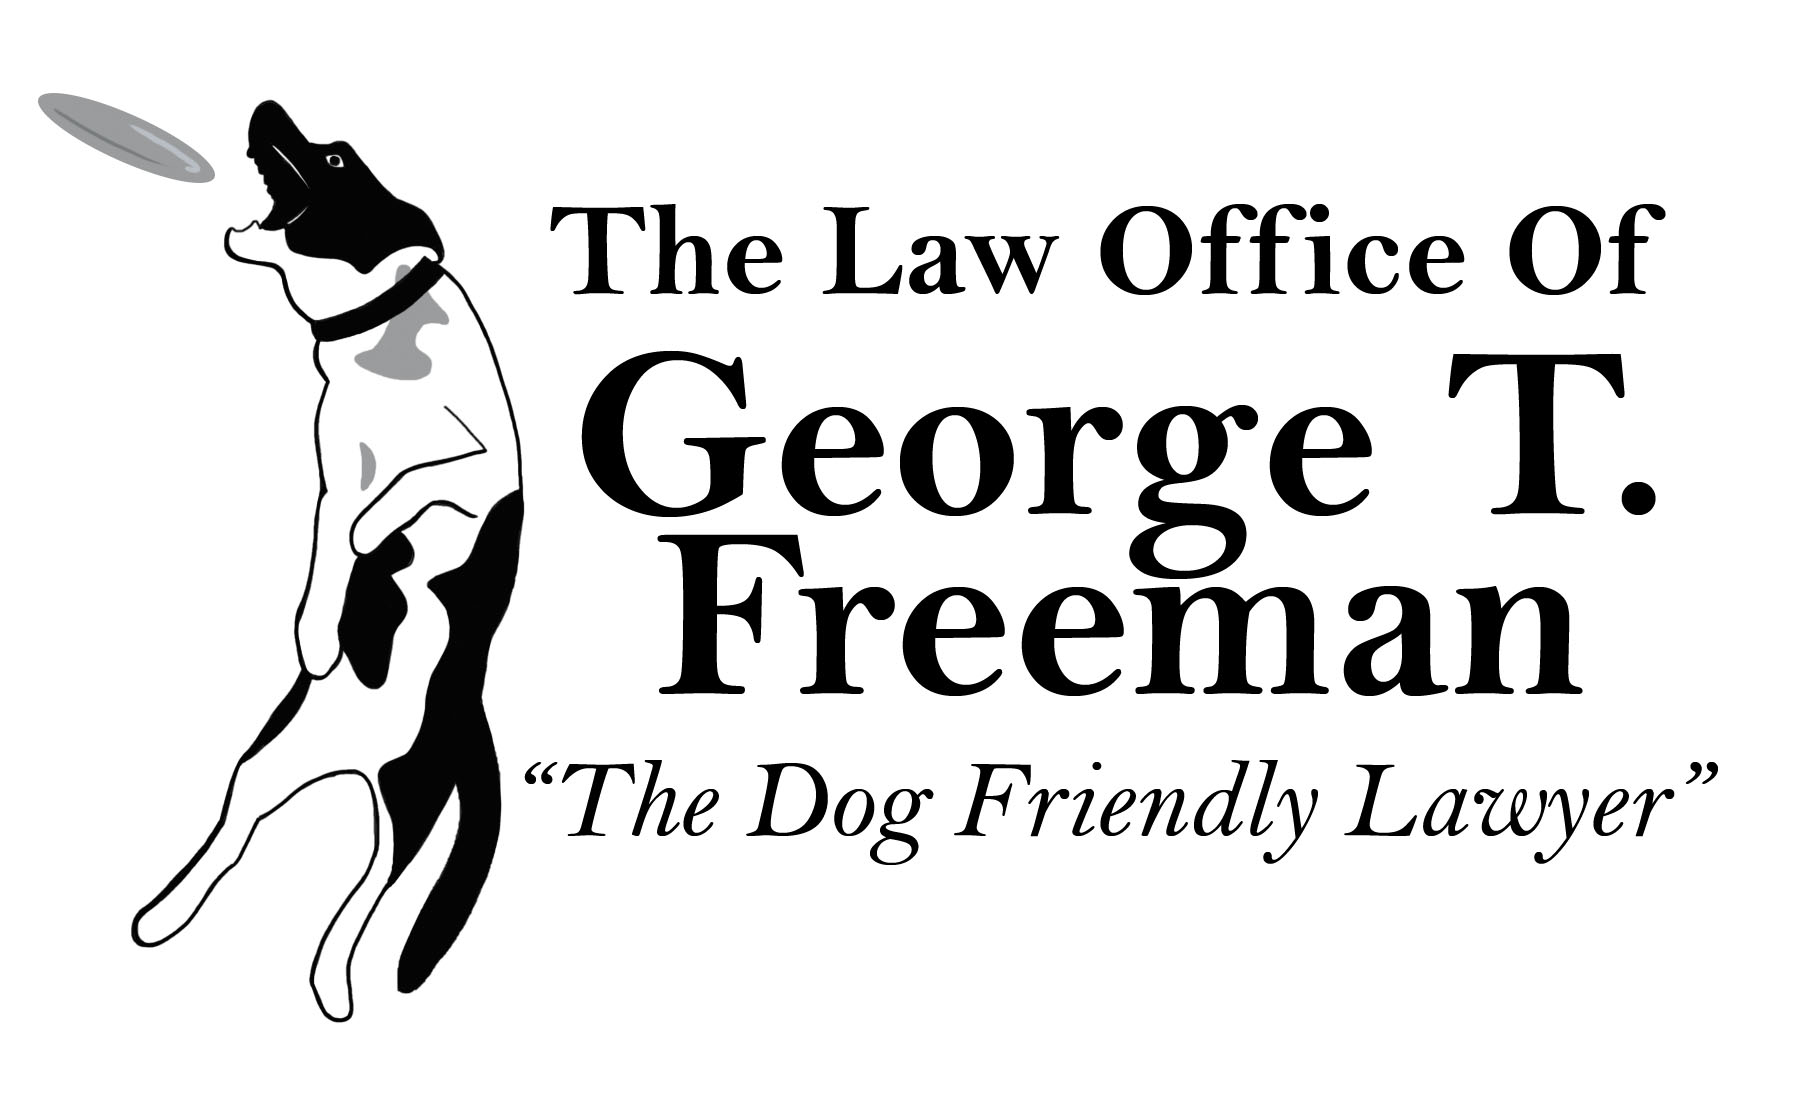 Law Office of George T. Freeman